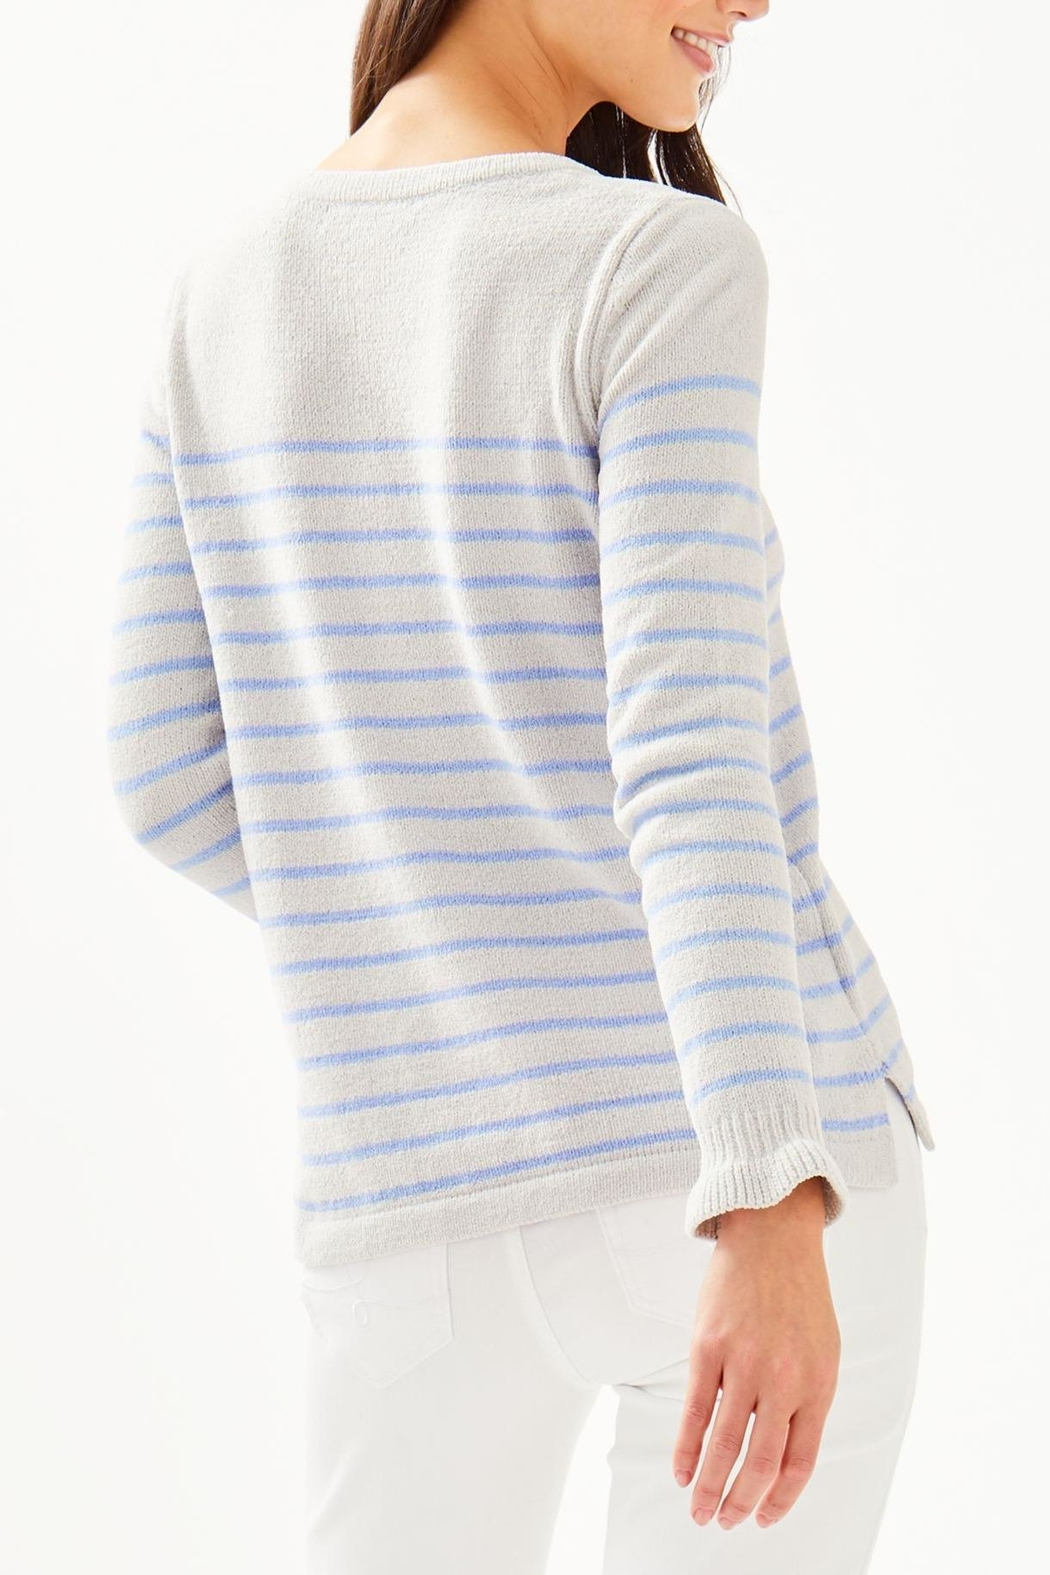 Lilly Pulitzer Calloway Sweater - Front Full Image